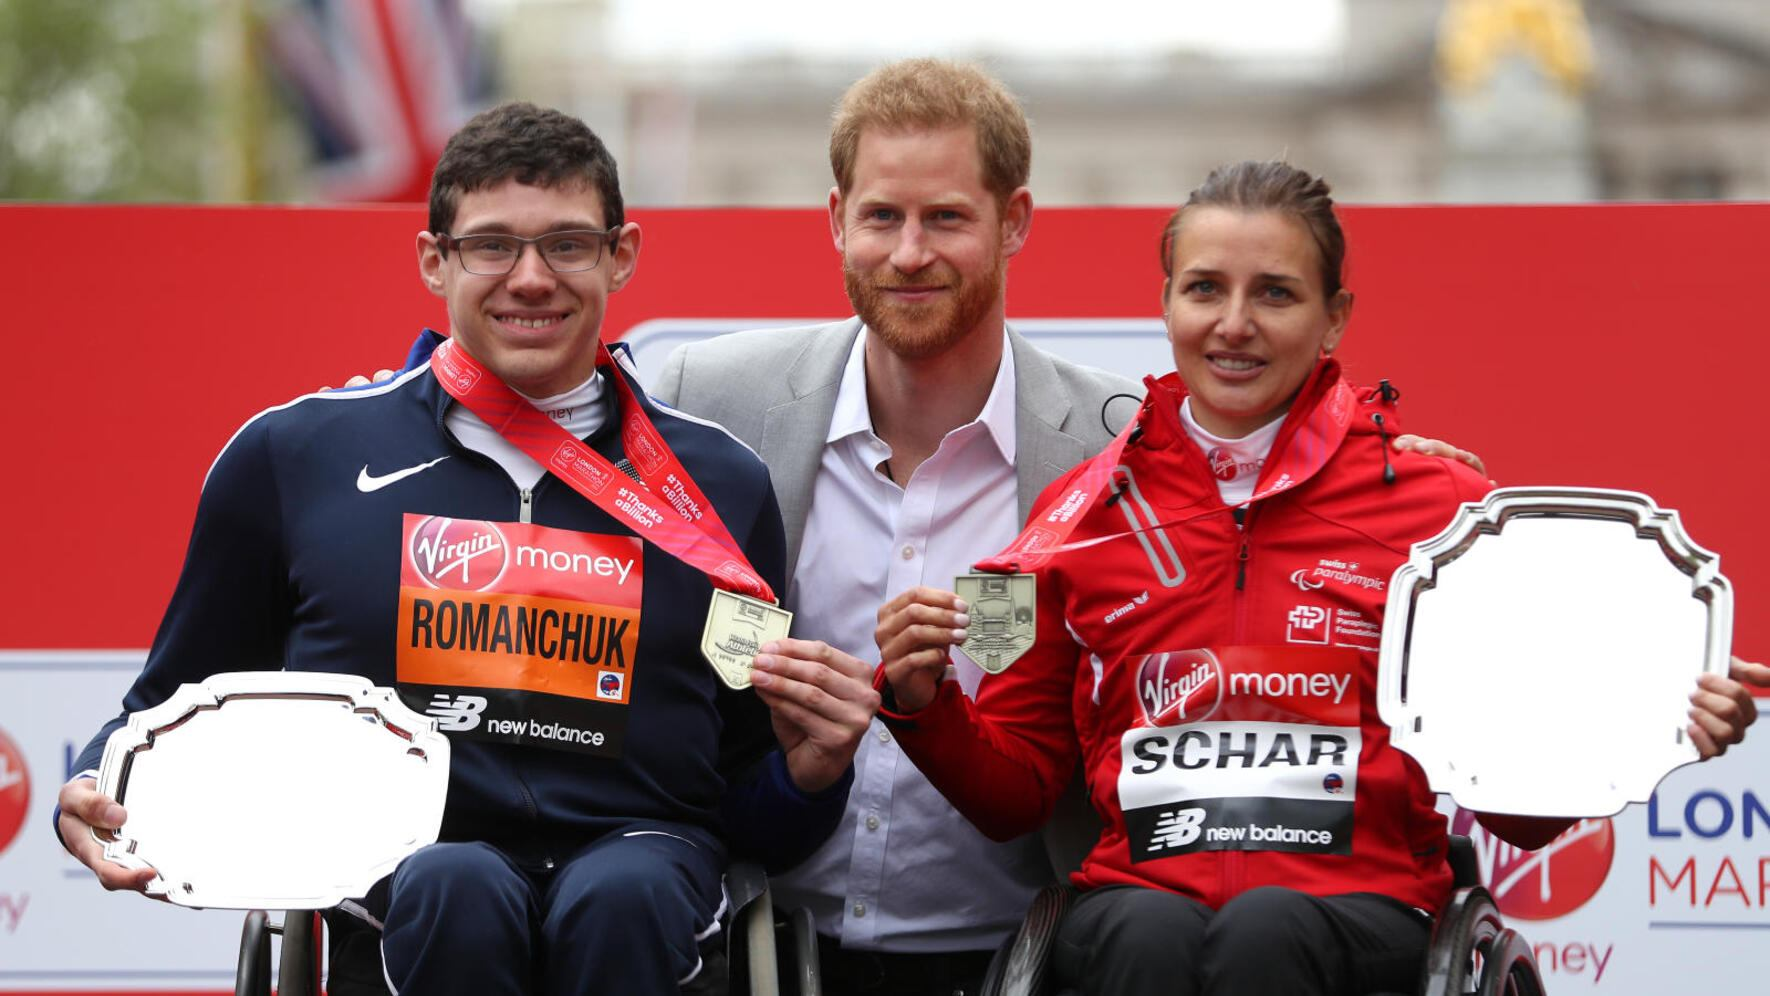 LONDON, ENGLAND - APRIL 28: Daniel Romanchuk of the USA and Manuela Schar of Switzerland pose for a photo with Prince Harry, Duke of Sussex after both winning their respective Wheelchair races during the 2019 Virgin Money London Marathon in the United Kingdom on April 28, 2019 in London, England. (Photo by Naomi Baker/Getty Images)